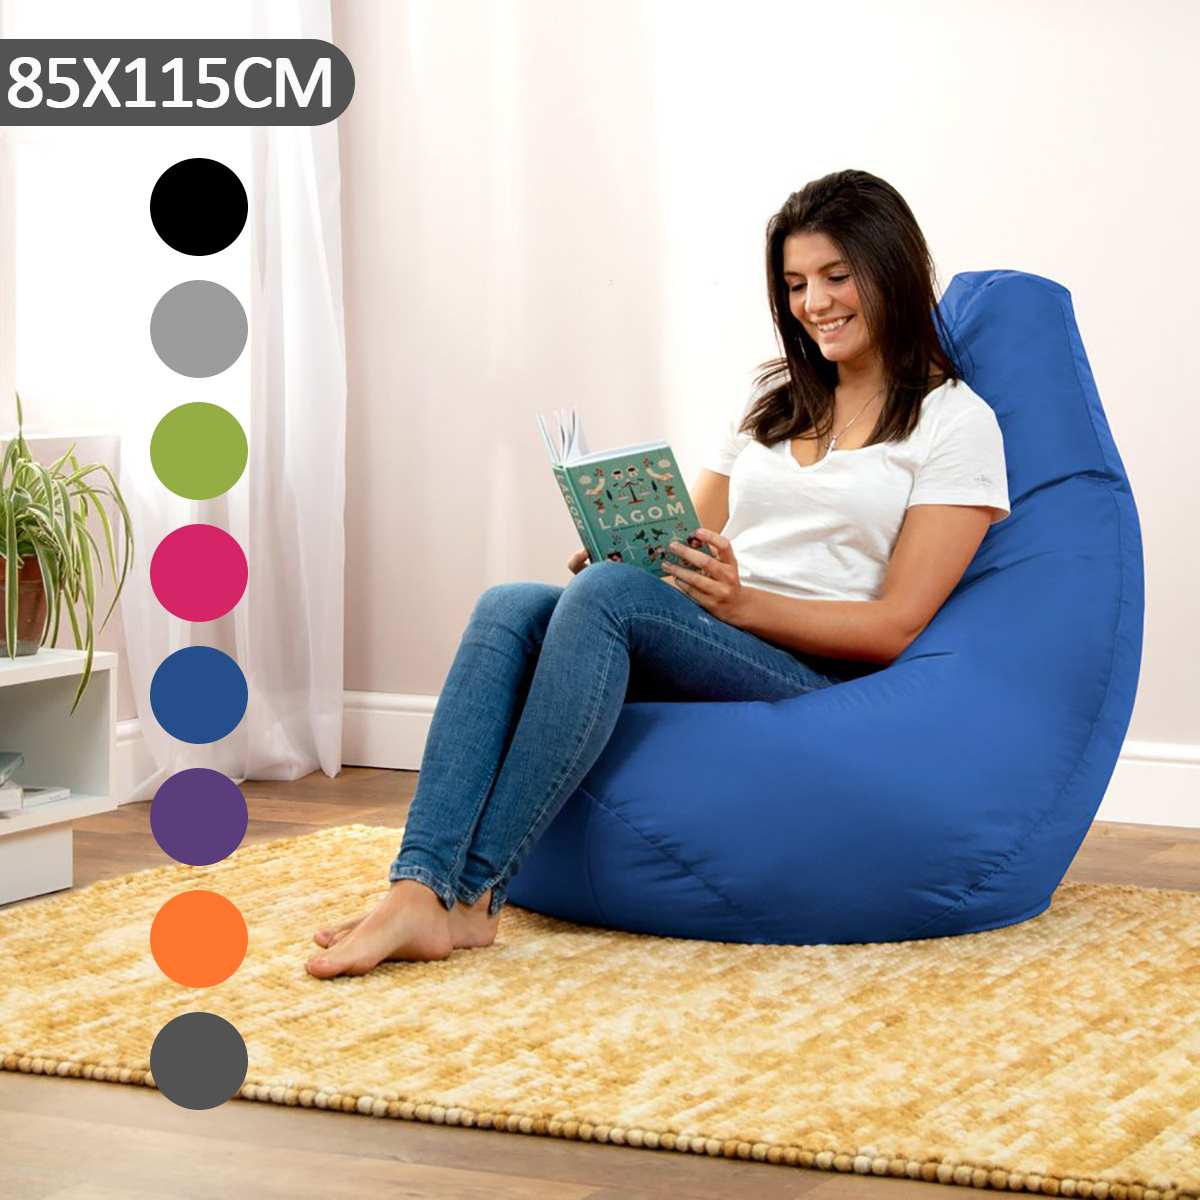 Us 23 9 40 Off Large Bean Bag Sofa Cover Lounger Chair Ottoman Seat Living Room Furniture Without Filler Beanbag Bed Pouf Puff Couch Tatam In